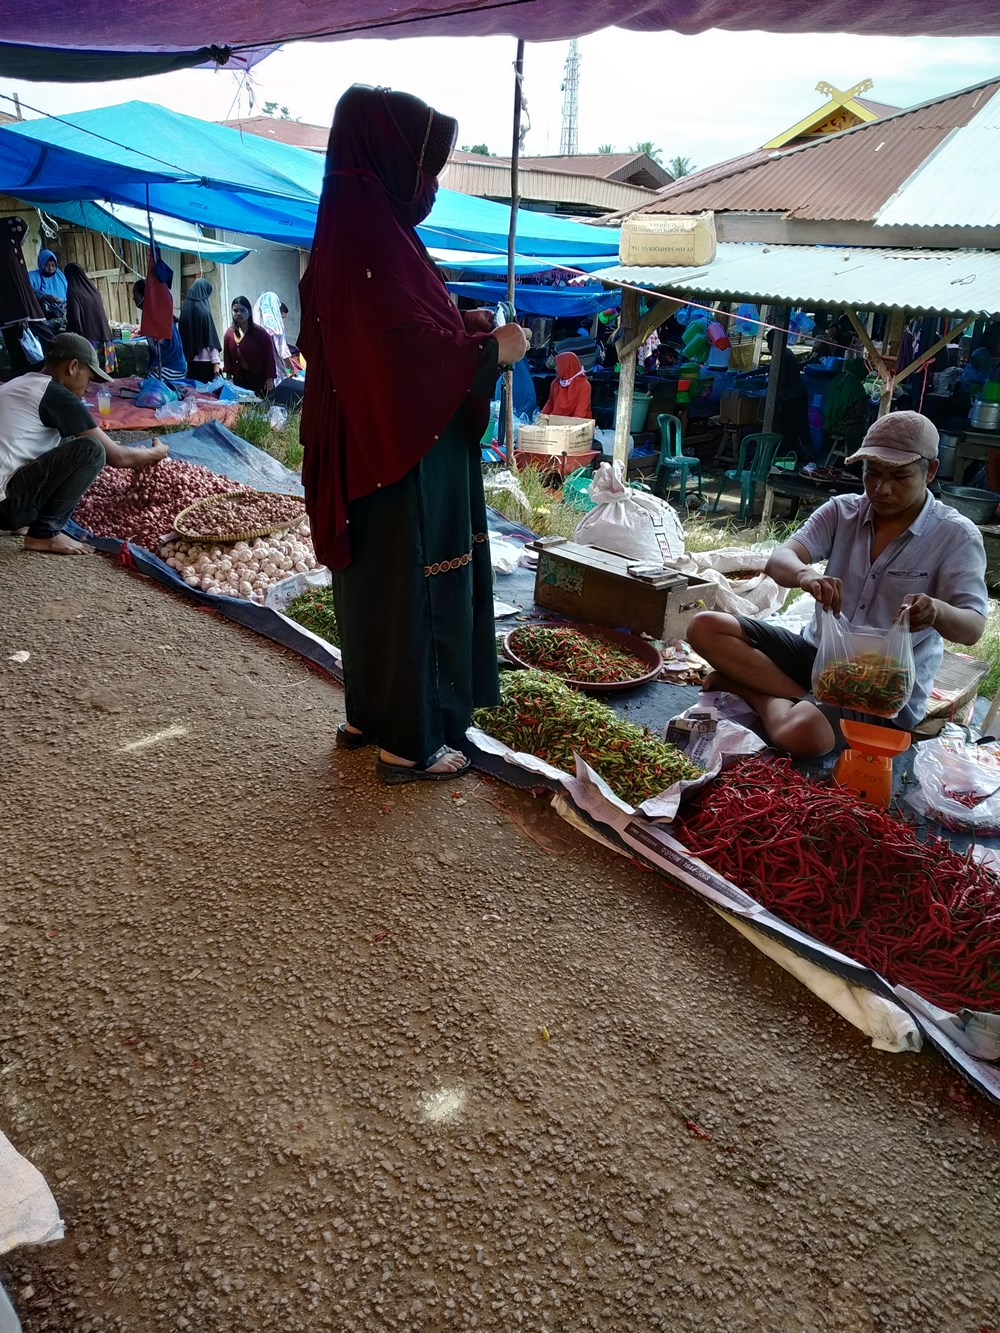 Foto Gratis Pasar Free Stock Photo Traditional market in Indonesia Asia penjual cabai merah